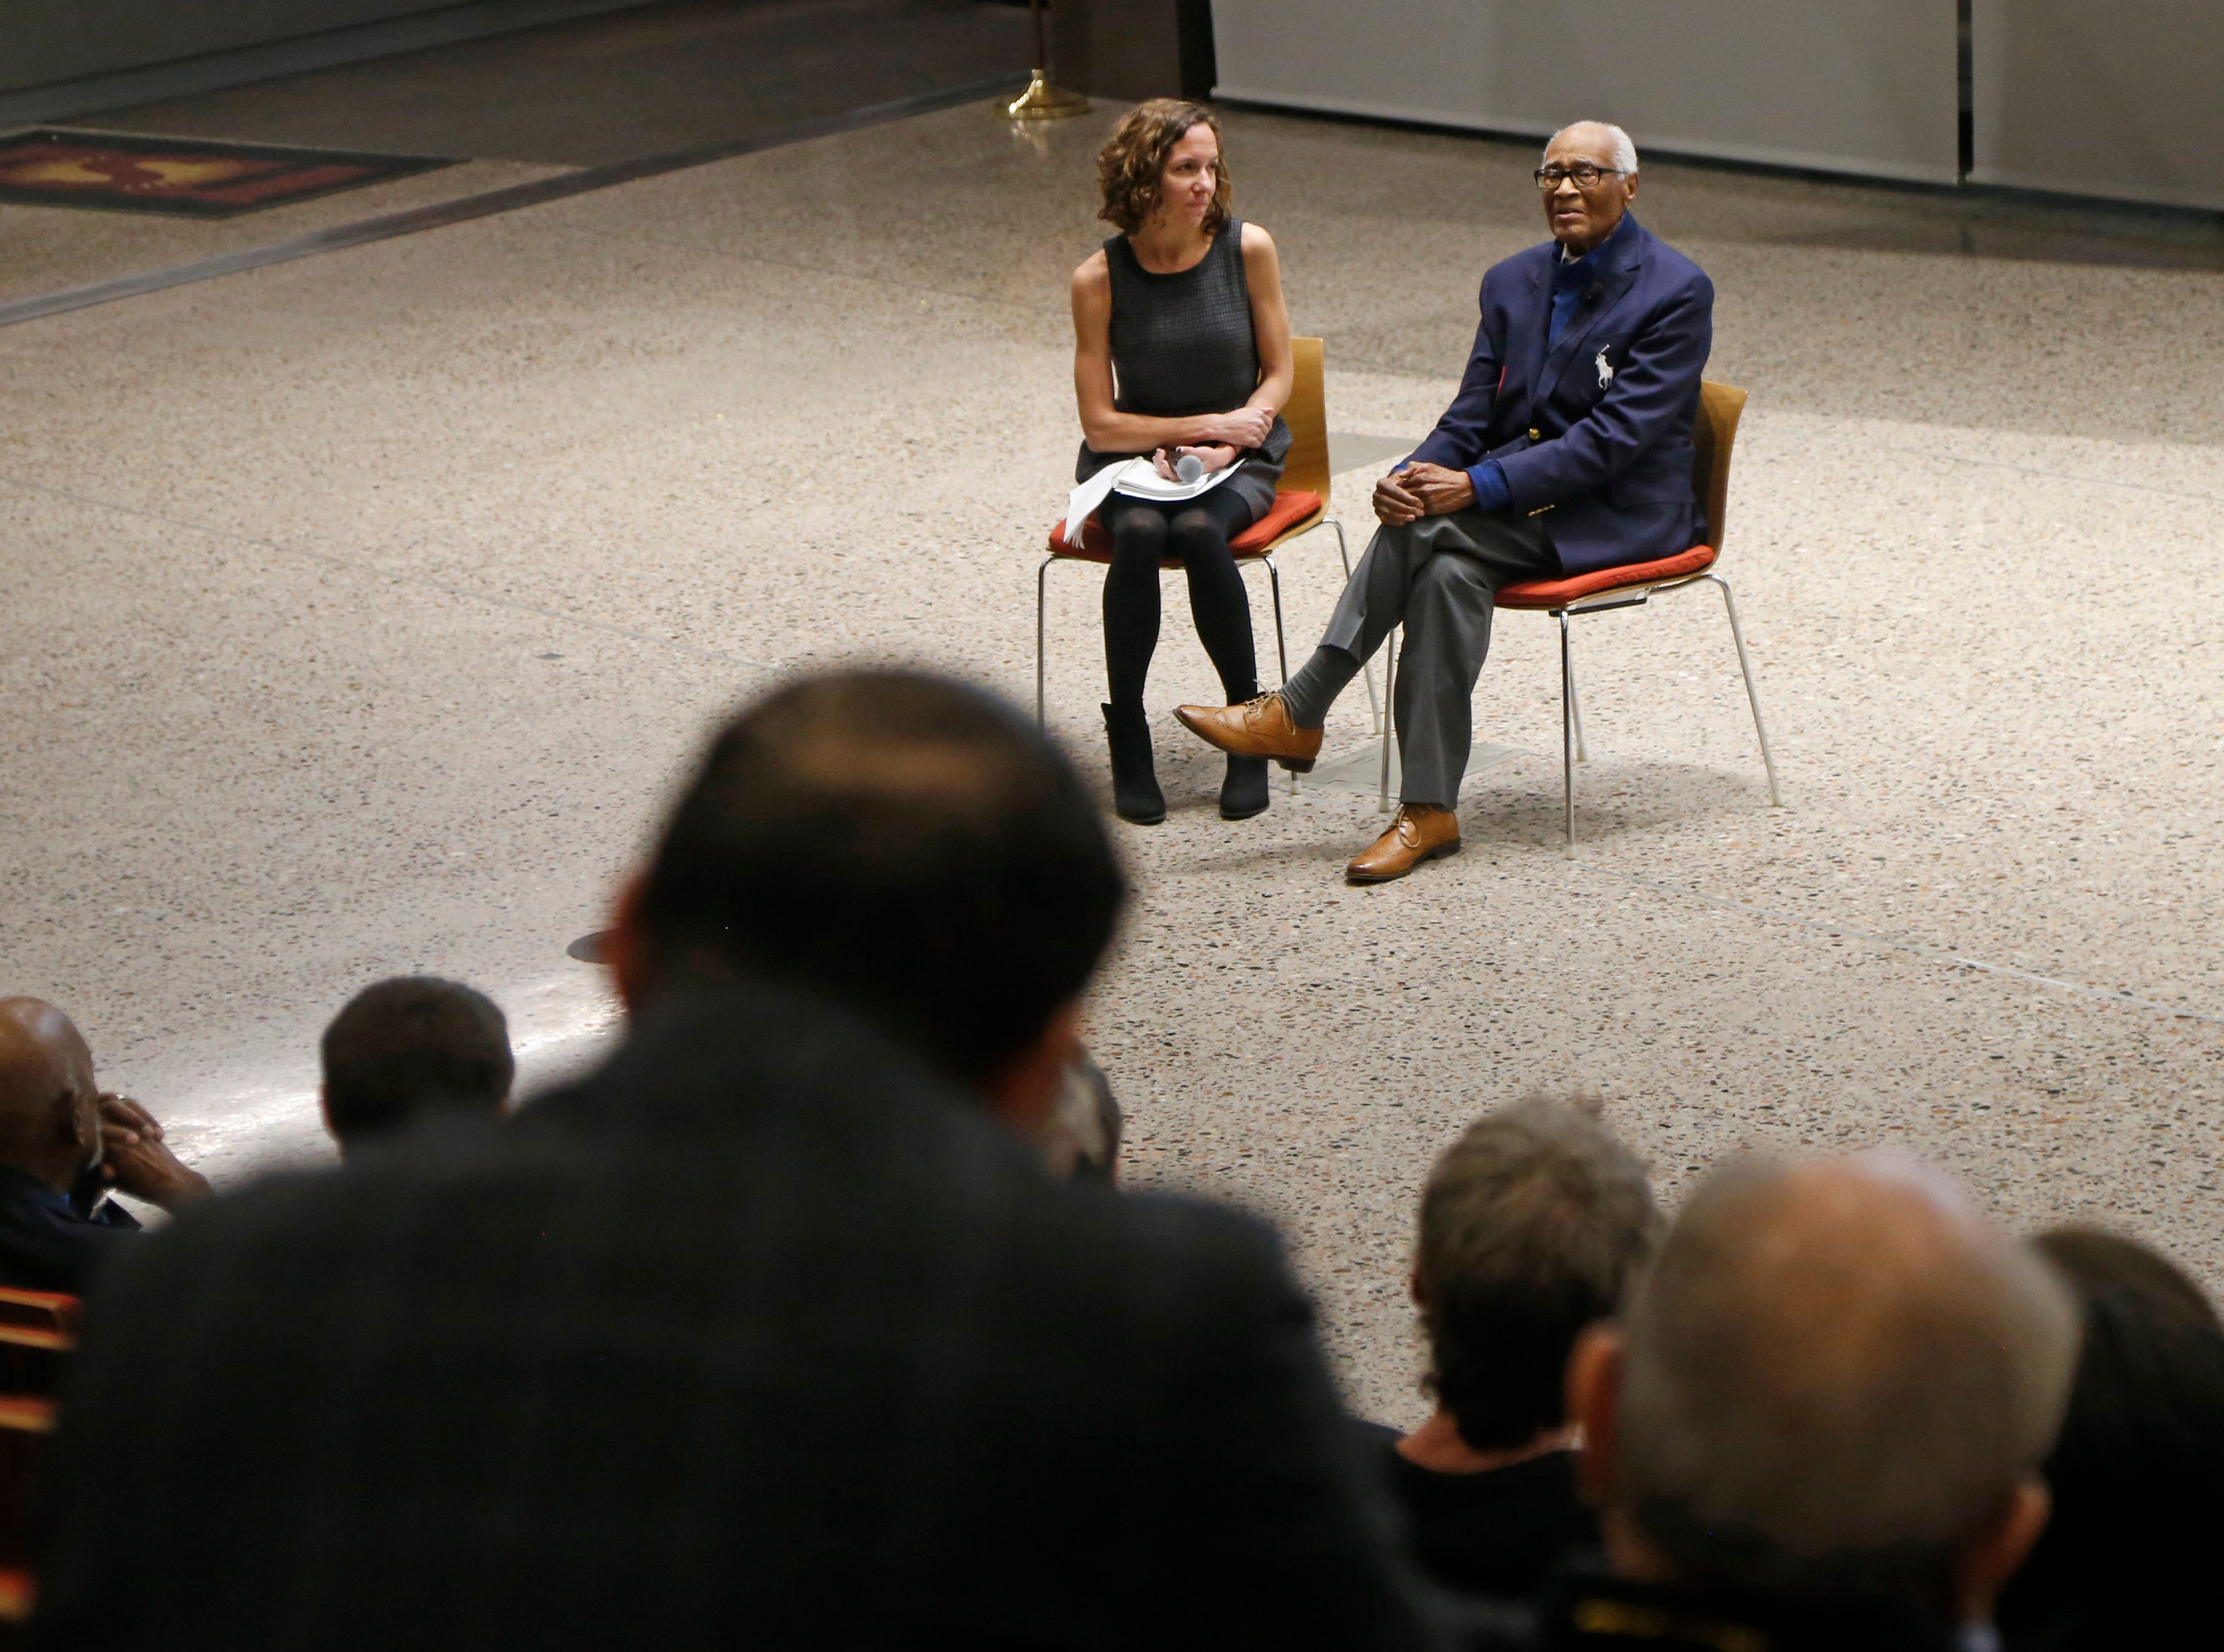 Herbert Douglas, the oldest living African-American medalist, speaks during a documentary screening and discussion of The Renaissance Period of the African American at Beus Center for Law and Society in Phoenix, Ariz. on February 11, 2019.